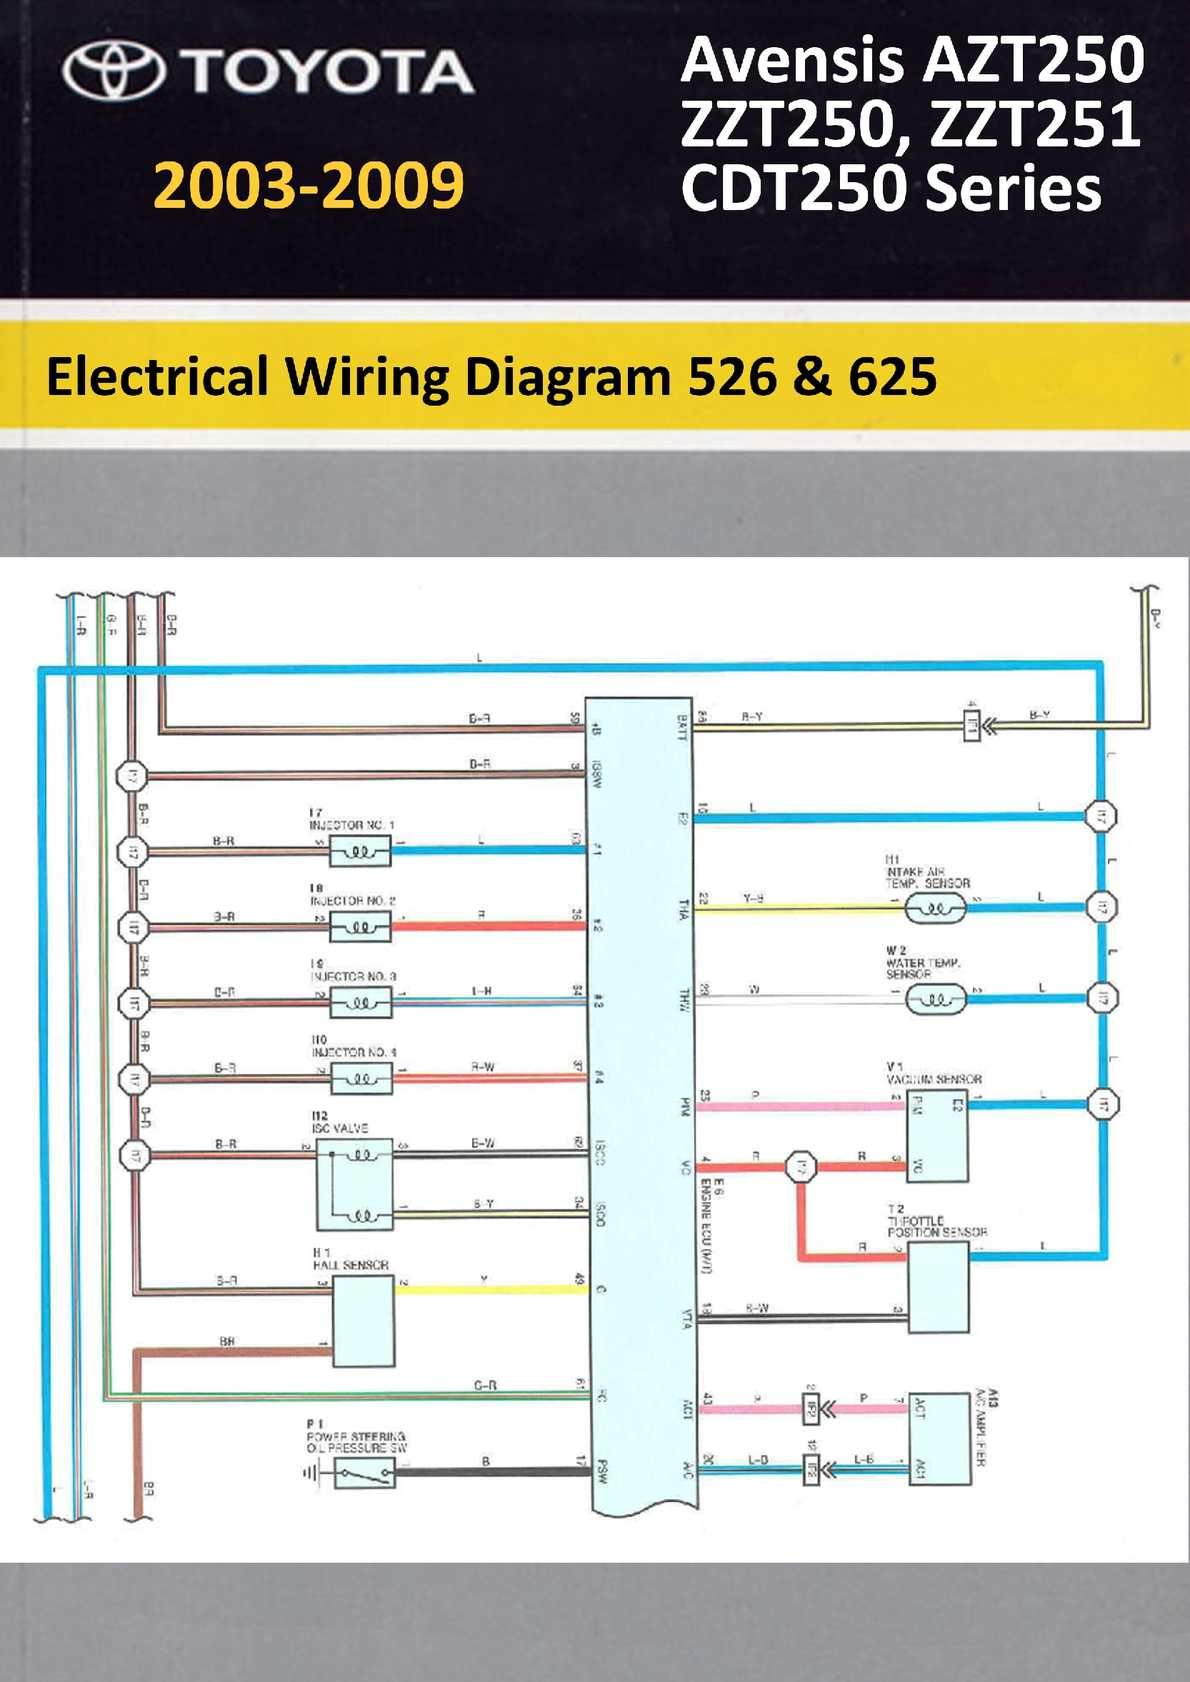 Calamo Vnxsu Avensis Ewd 2005 1 Shr Series Wiring Diagram Hot Rails